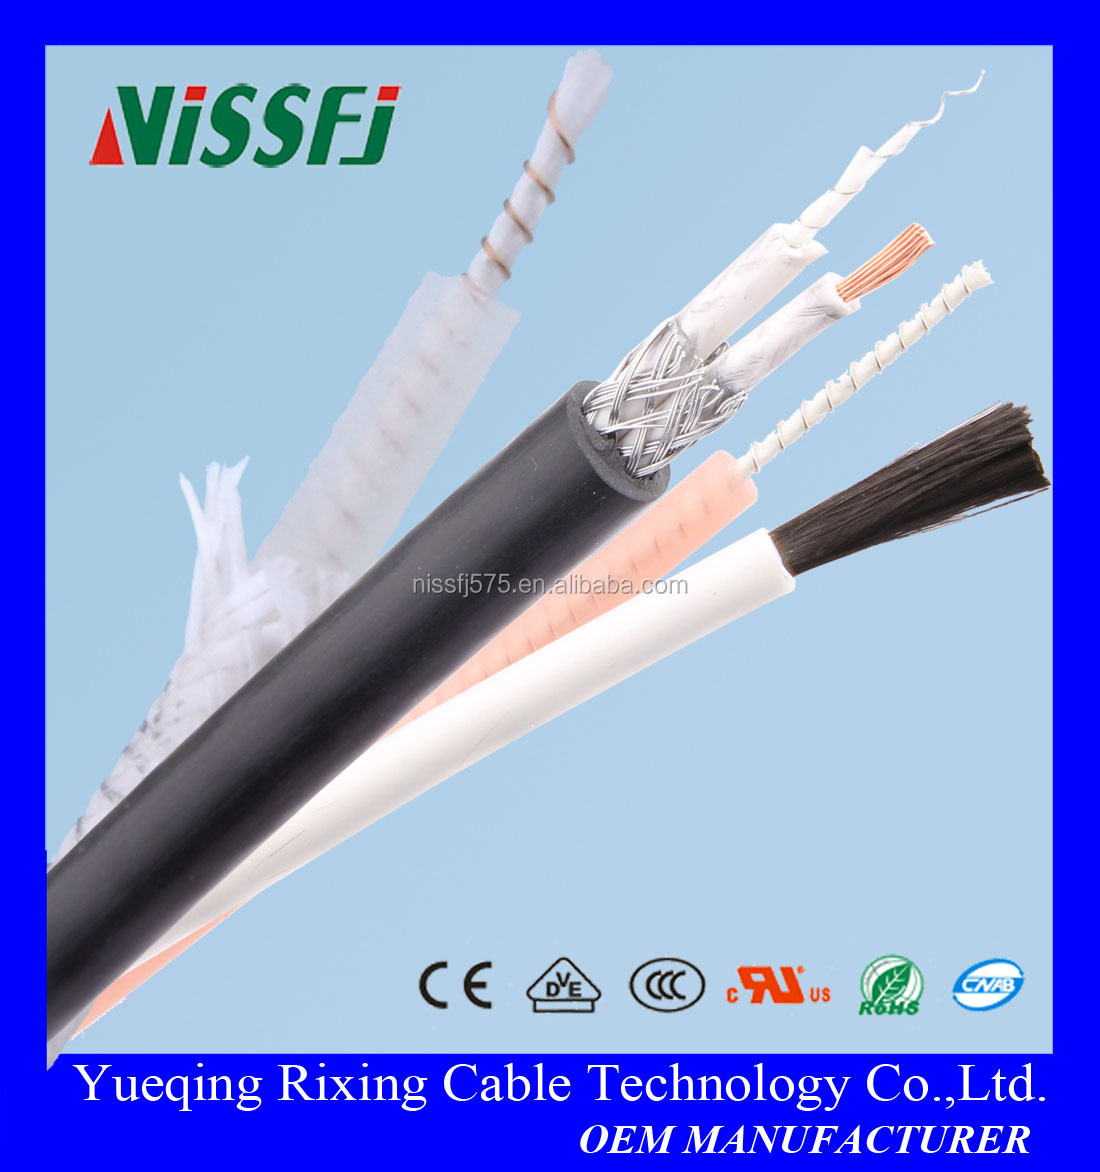 FLOOR HEATING SYSTEM use heating cable OEM EXCELLENT QUALITY SUPPLY YOU SAFE AND WARM ENVIRONMENT